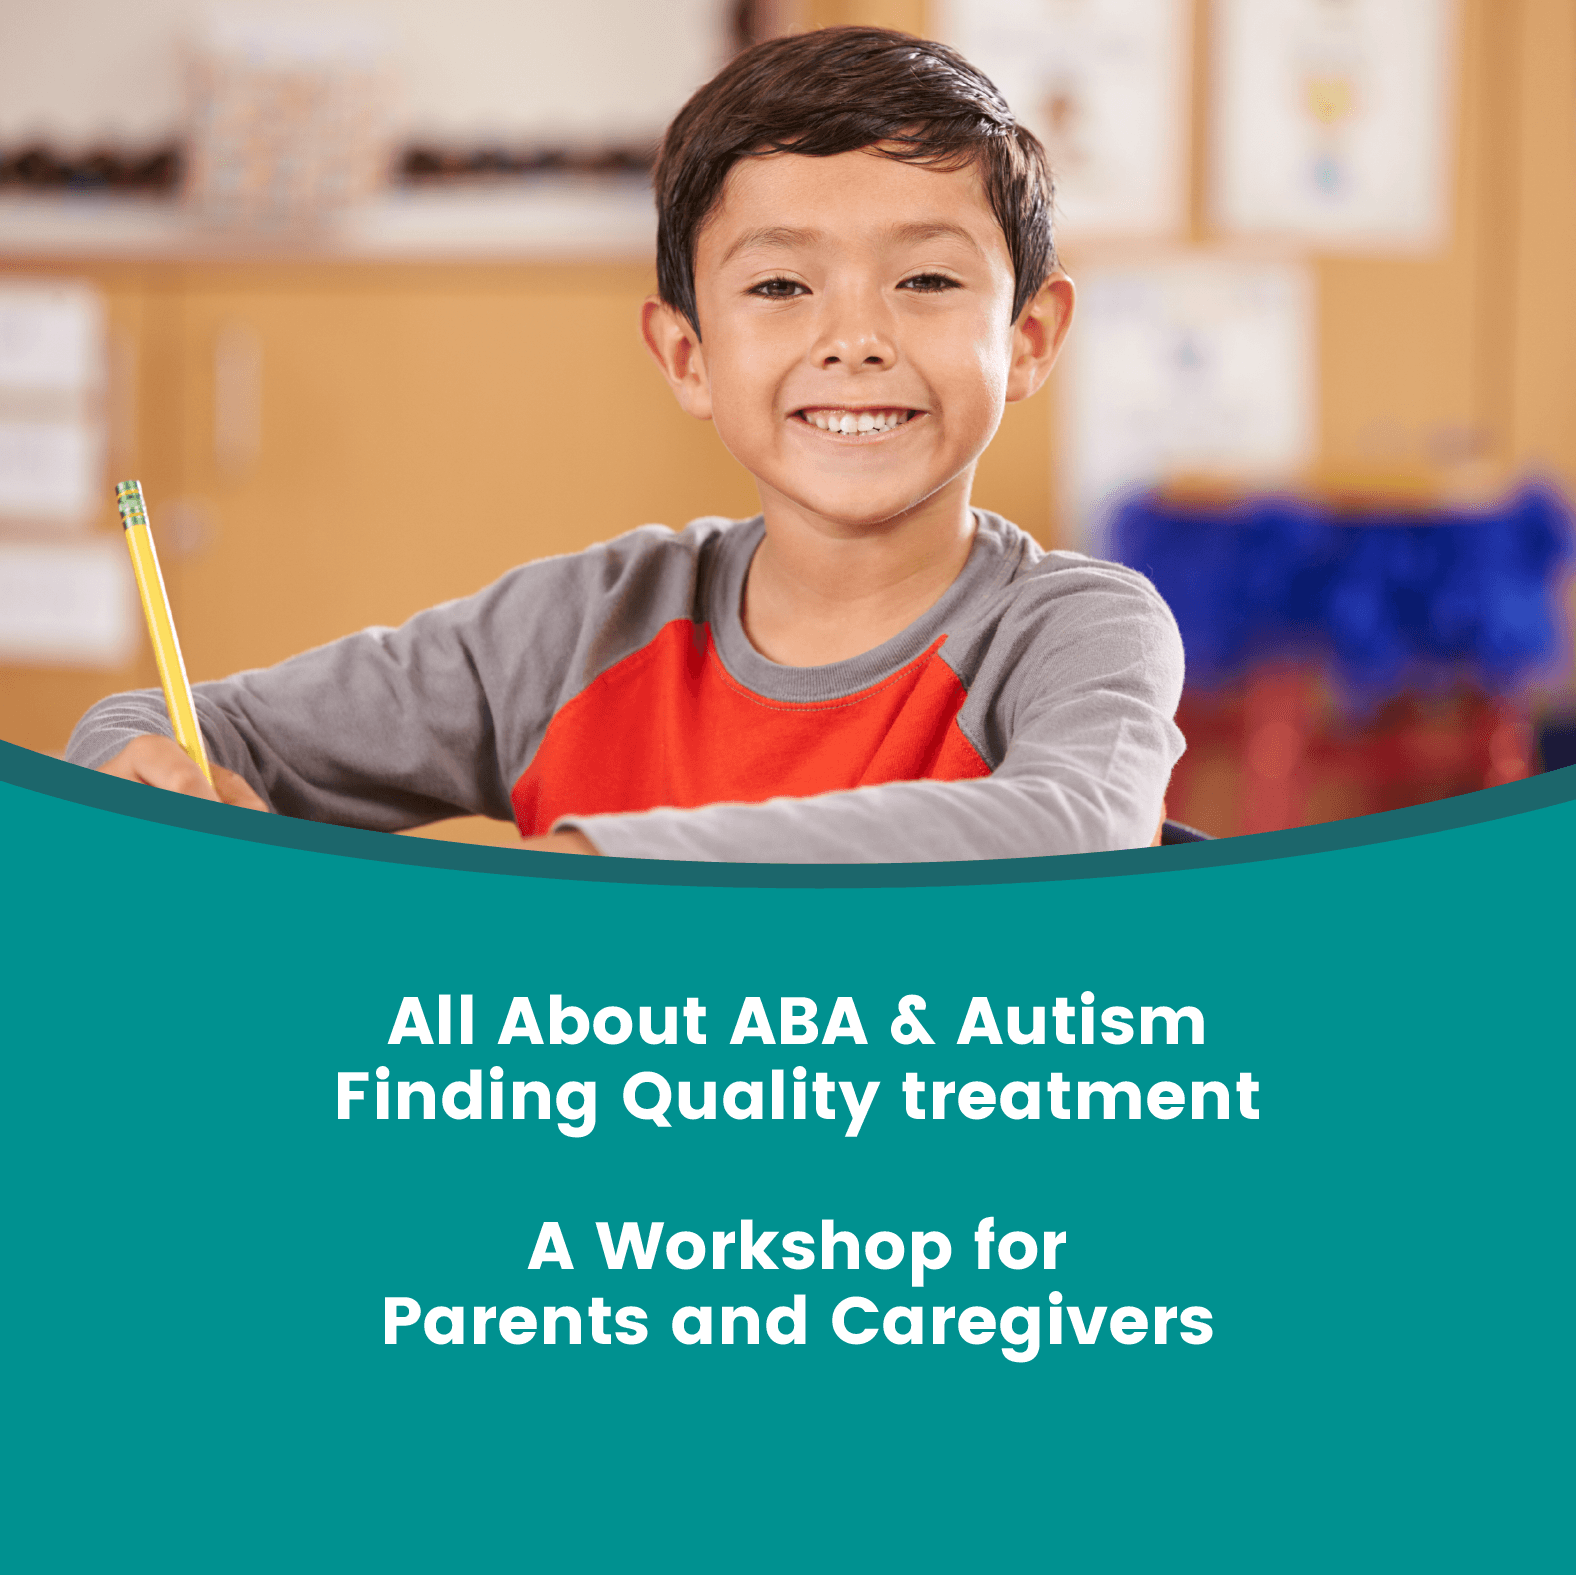 All About ABA & Autism – Finding Quality Treatment - ABA Treatment